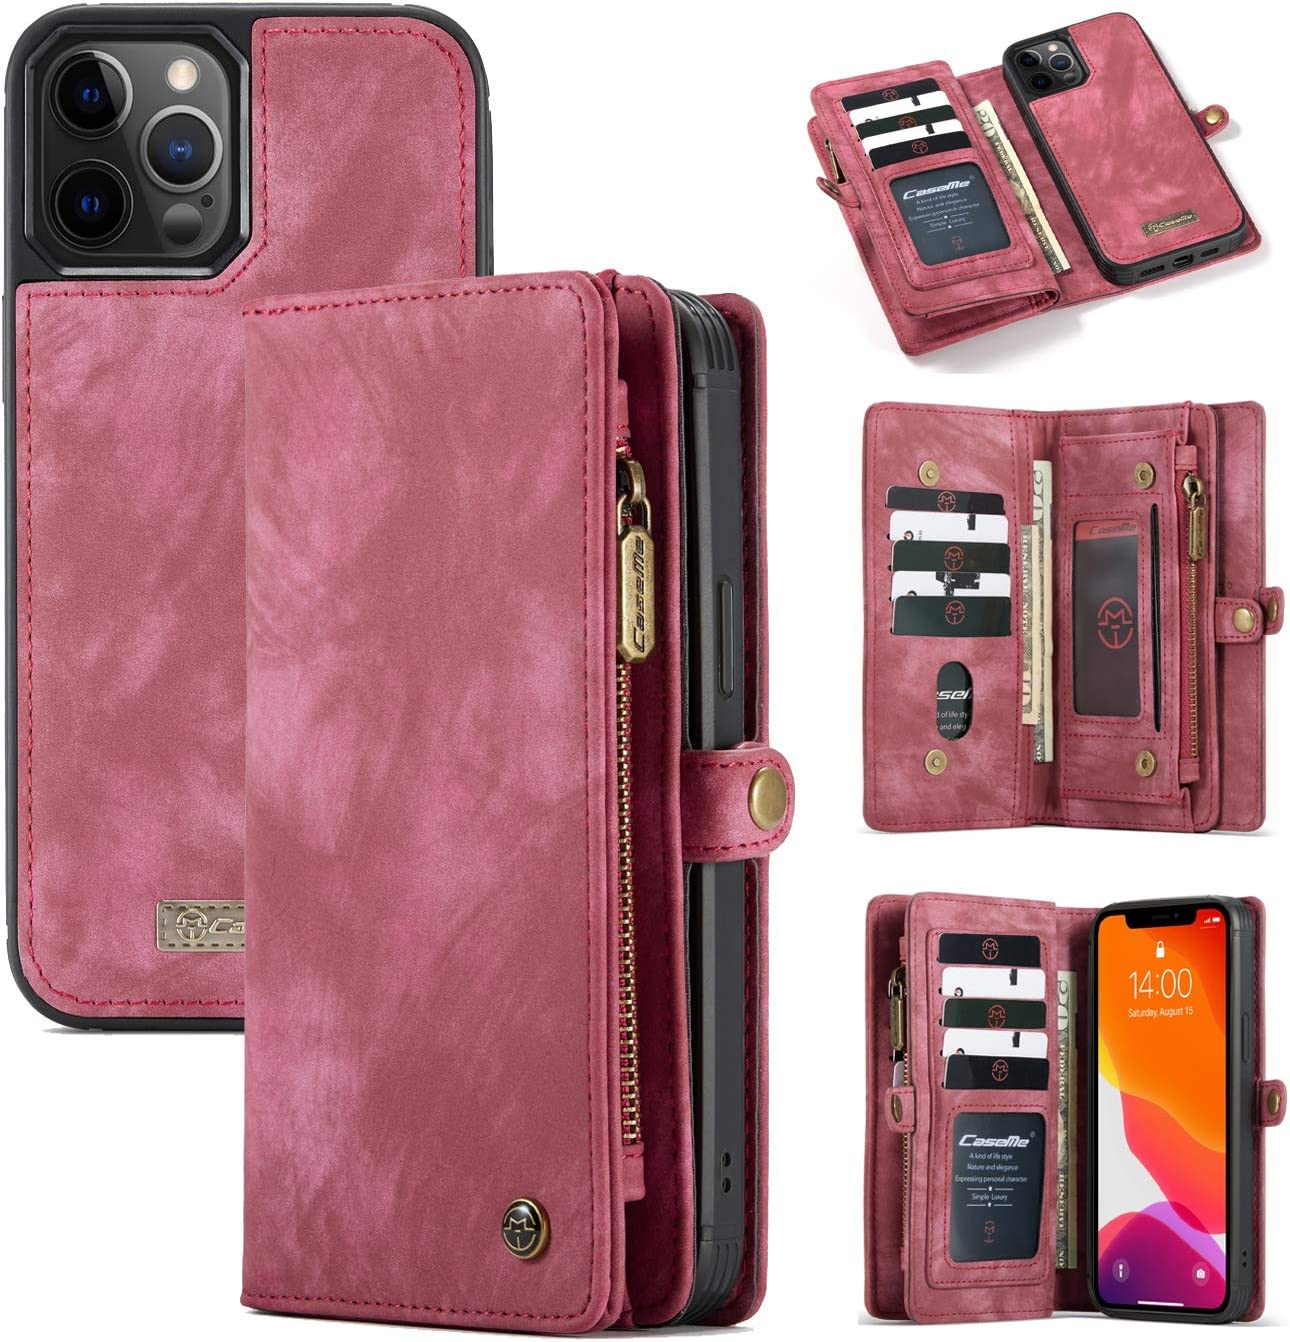 iPhone 12/12 Pro 6.1'' Wallet Case, AKHVRS Handmade Leather Zipper Wallet Case Flip Cover with 11 Multip ID Credit Card Slots Holder & Detachable Magnetic Phone Case for iPhone 12/12 Pro - Red